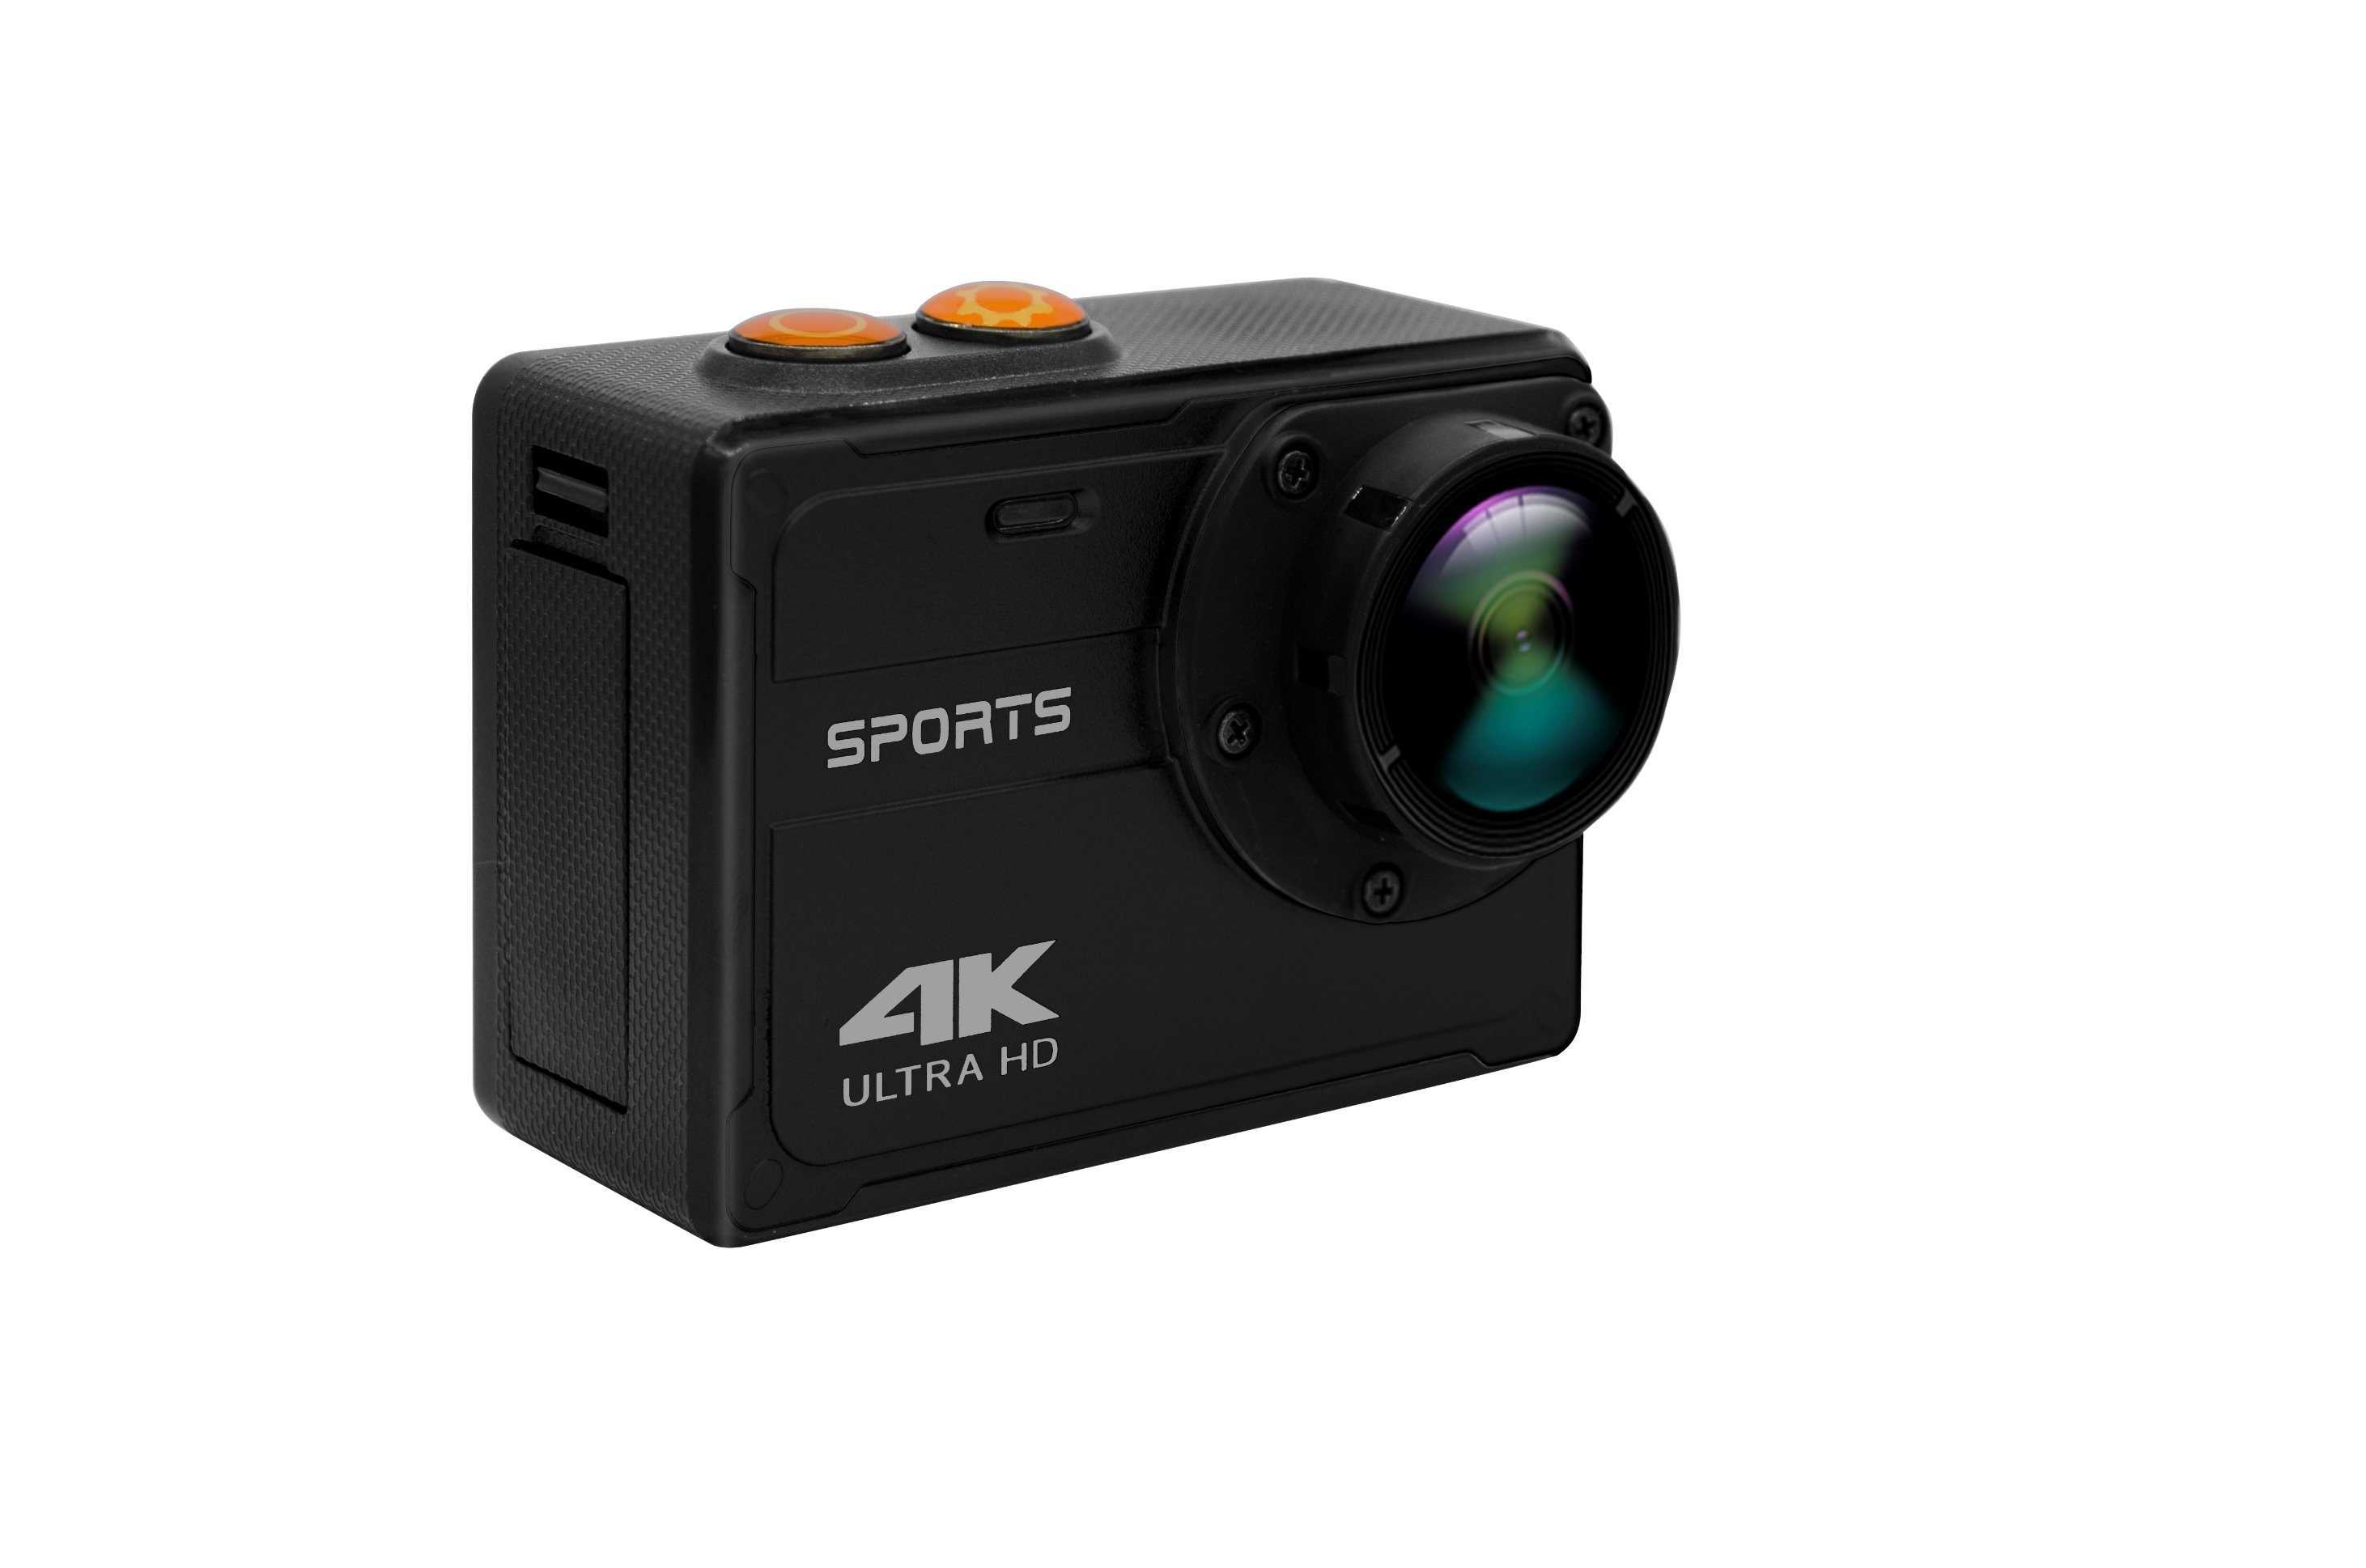 16MP 4k 5m Waterproof WiFi Sports Action Camera